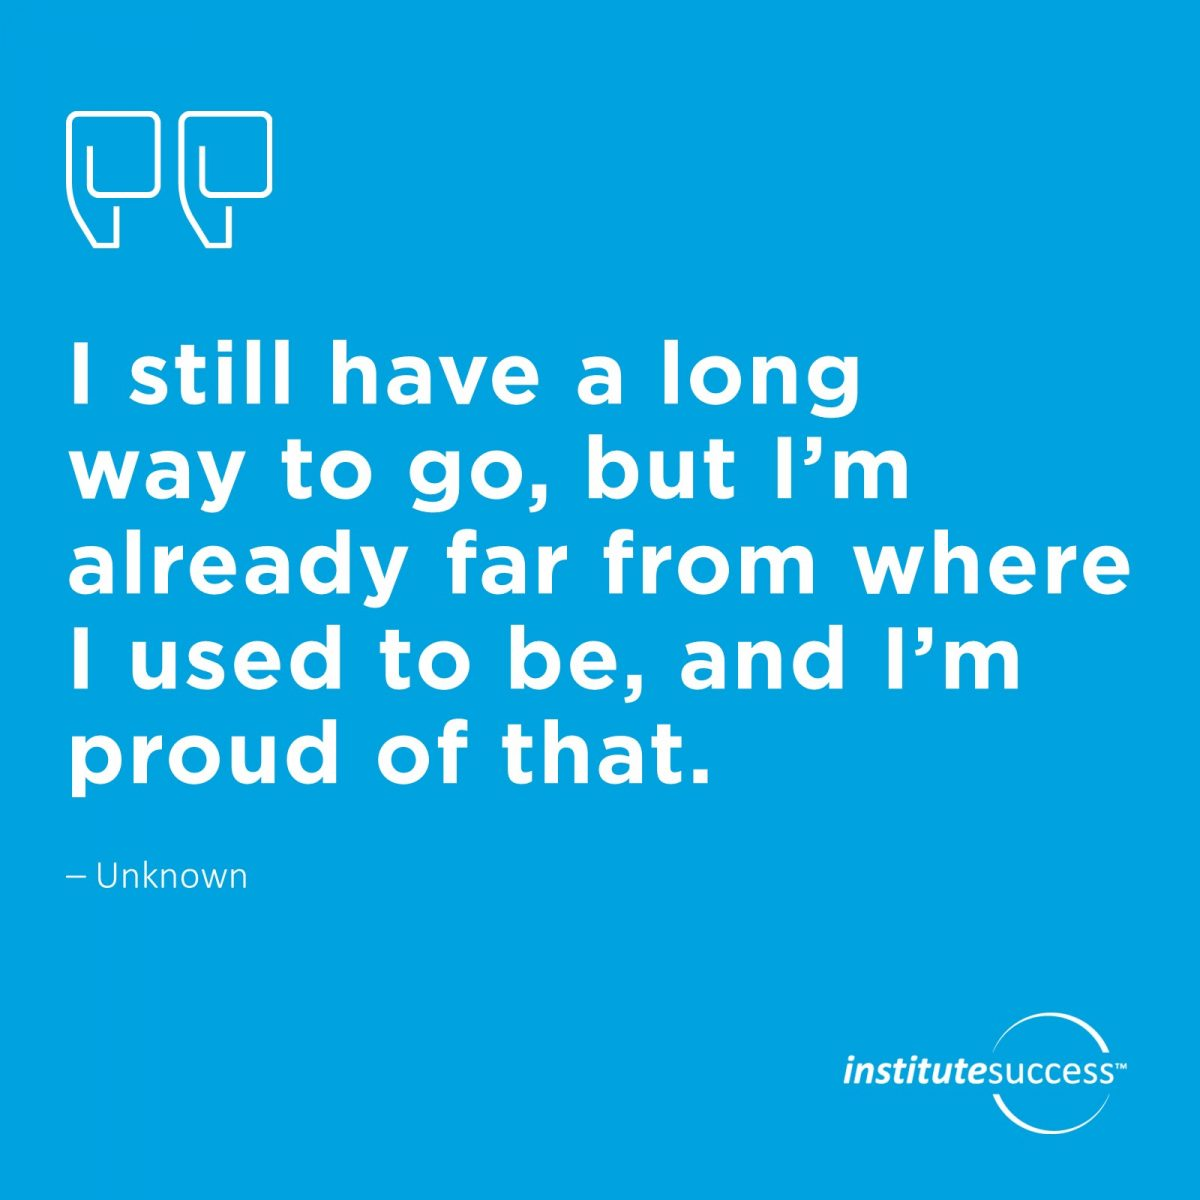 I still have a long way to go, but I'm already far from where I used to be, and I'm proud of that. Unknown